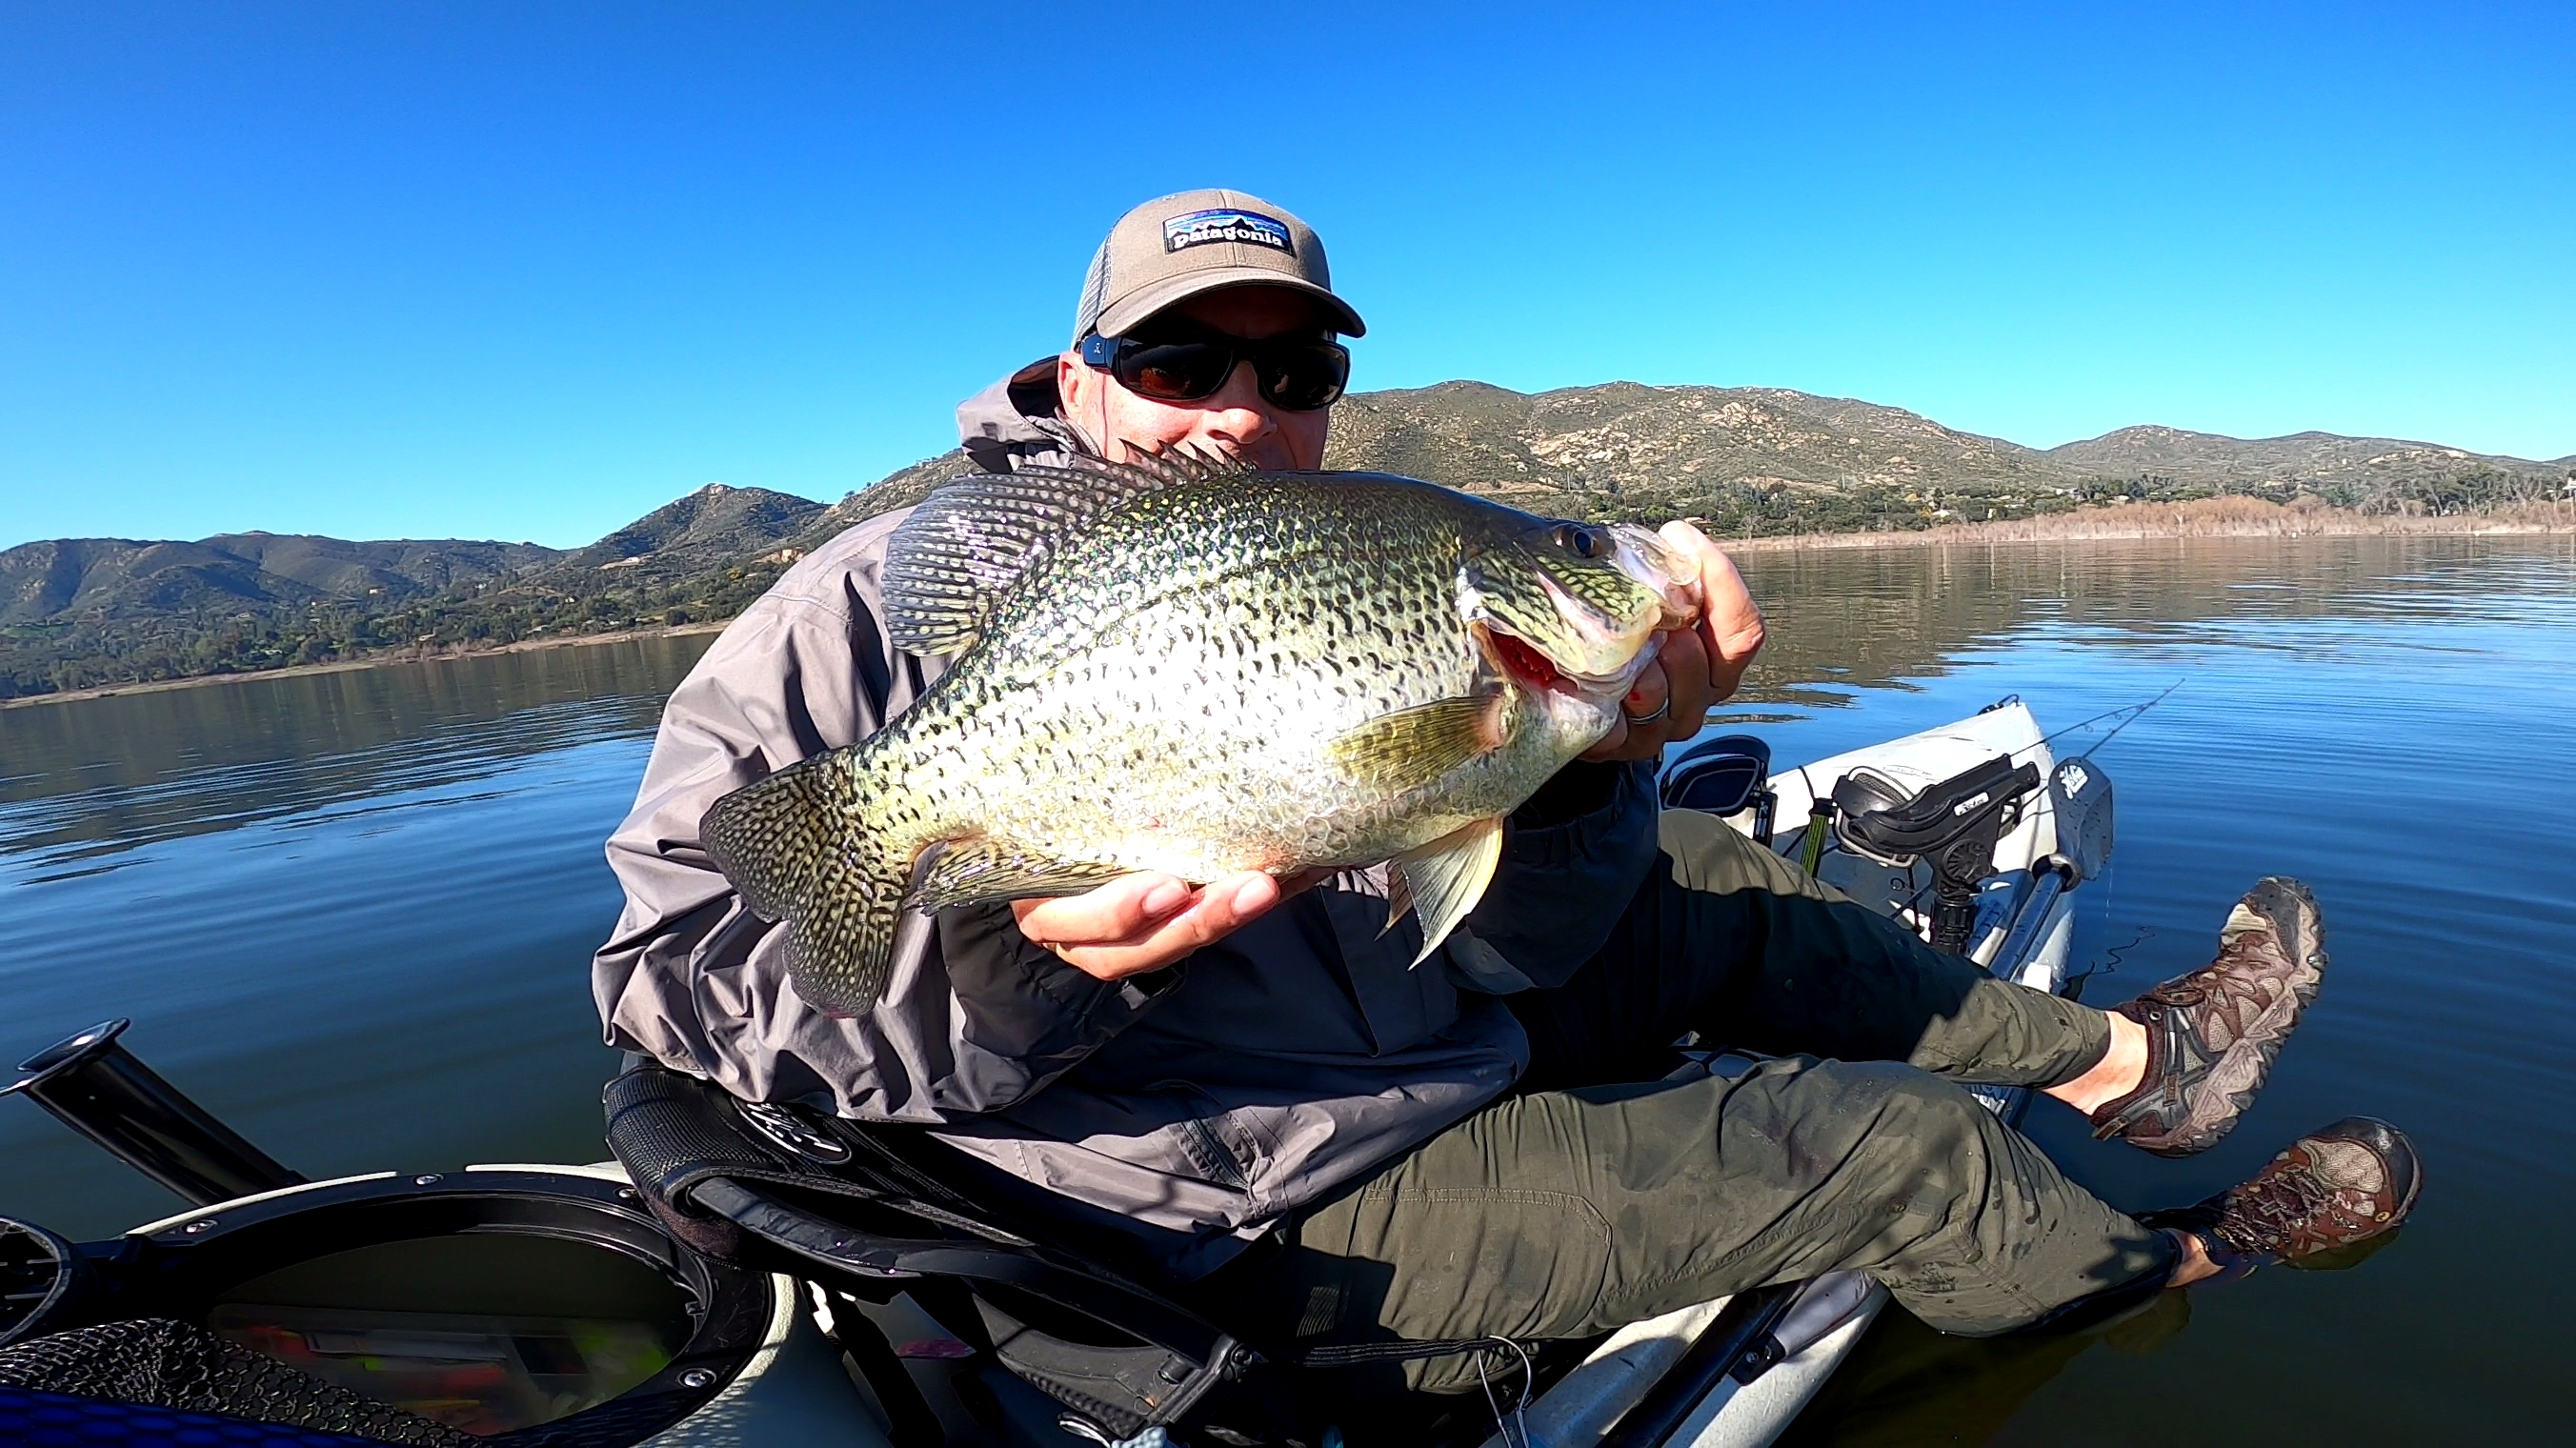 aGH010235 - Fat Crappie Hold.jpg